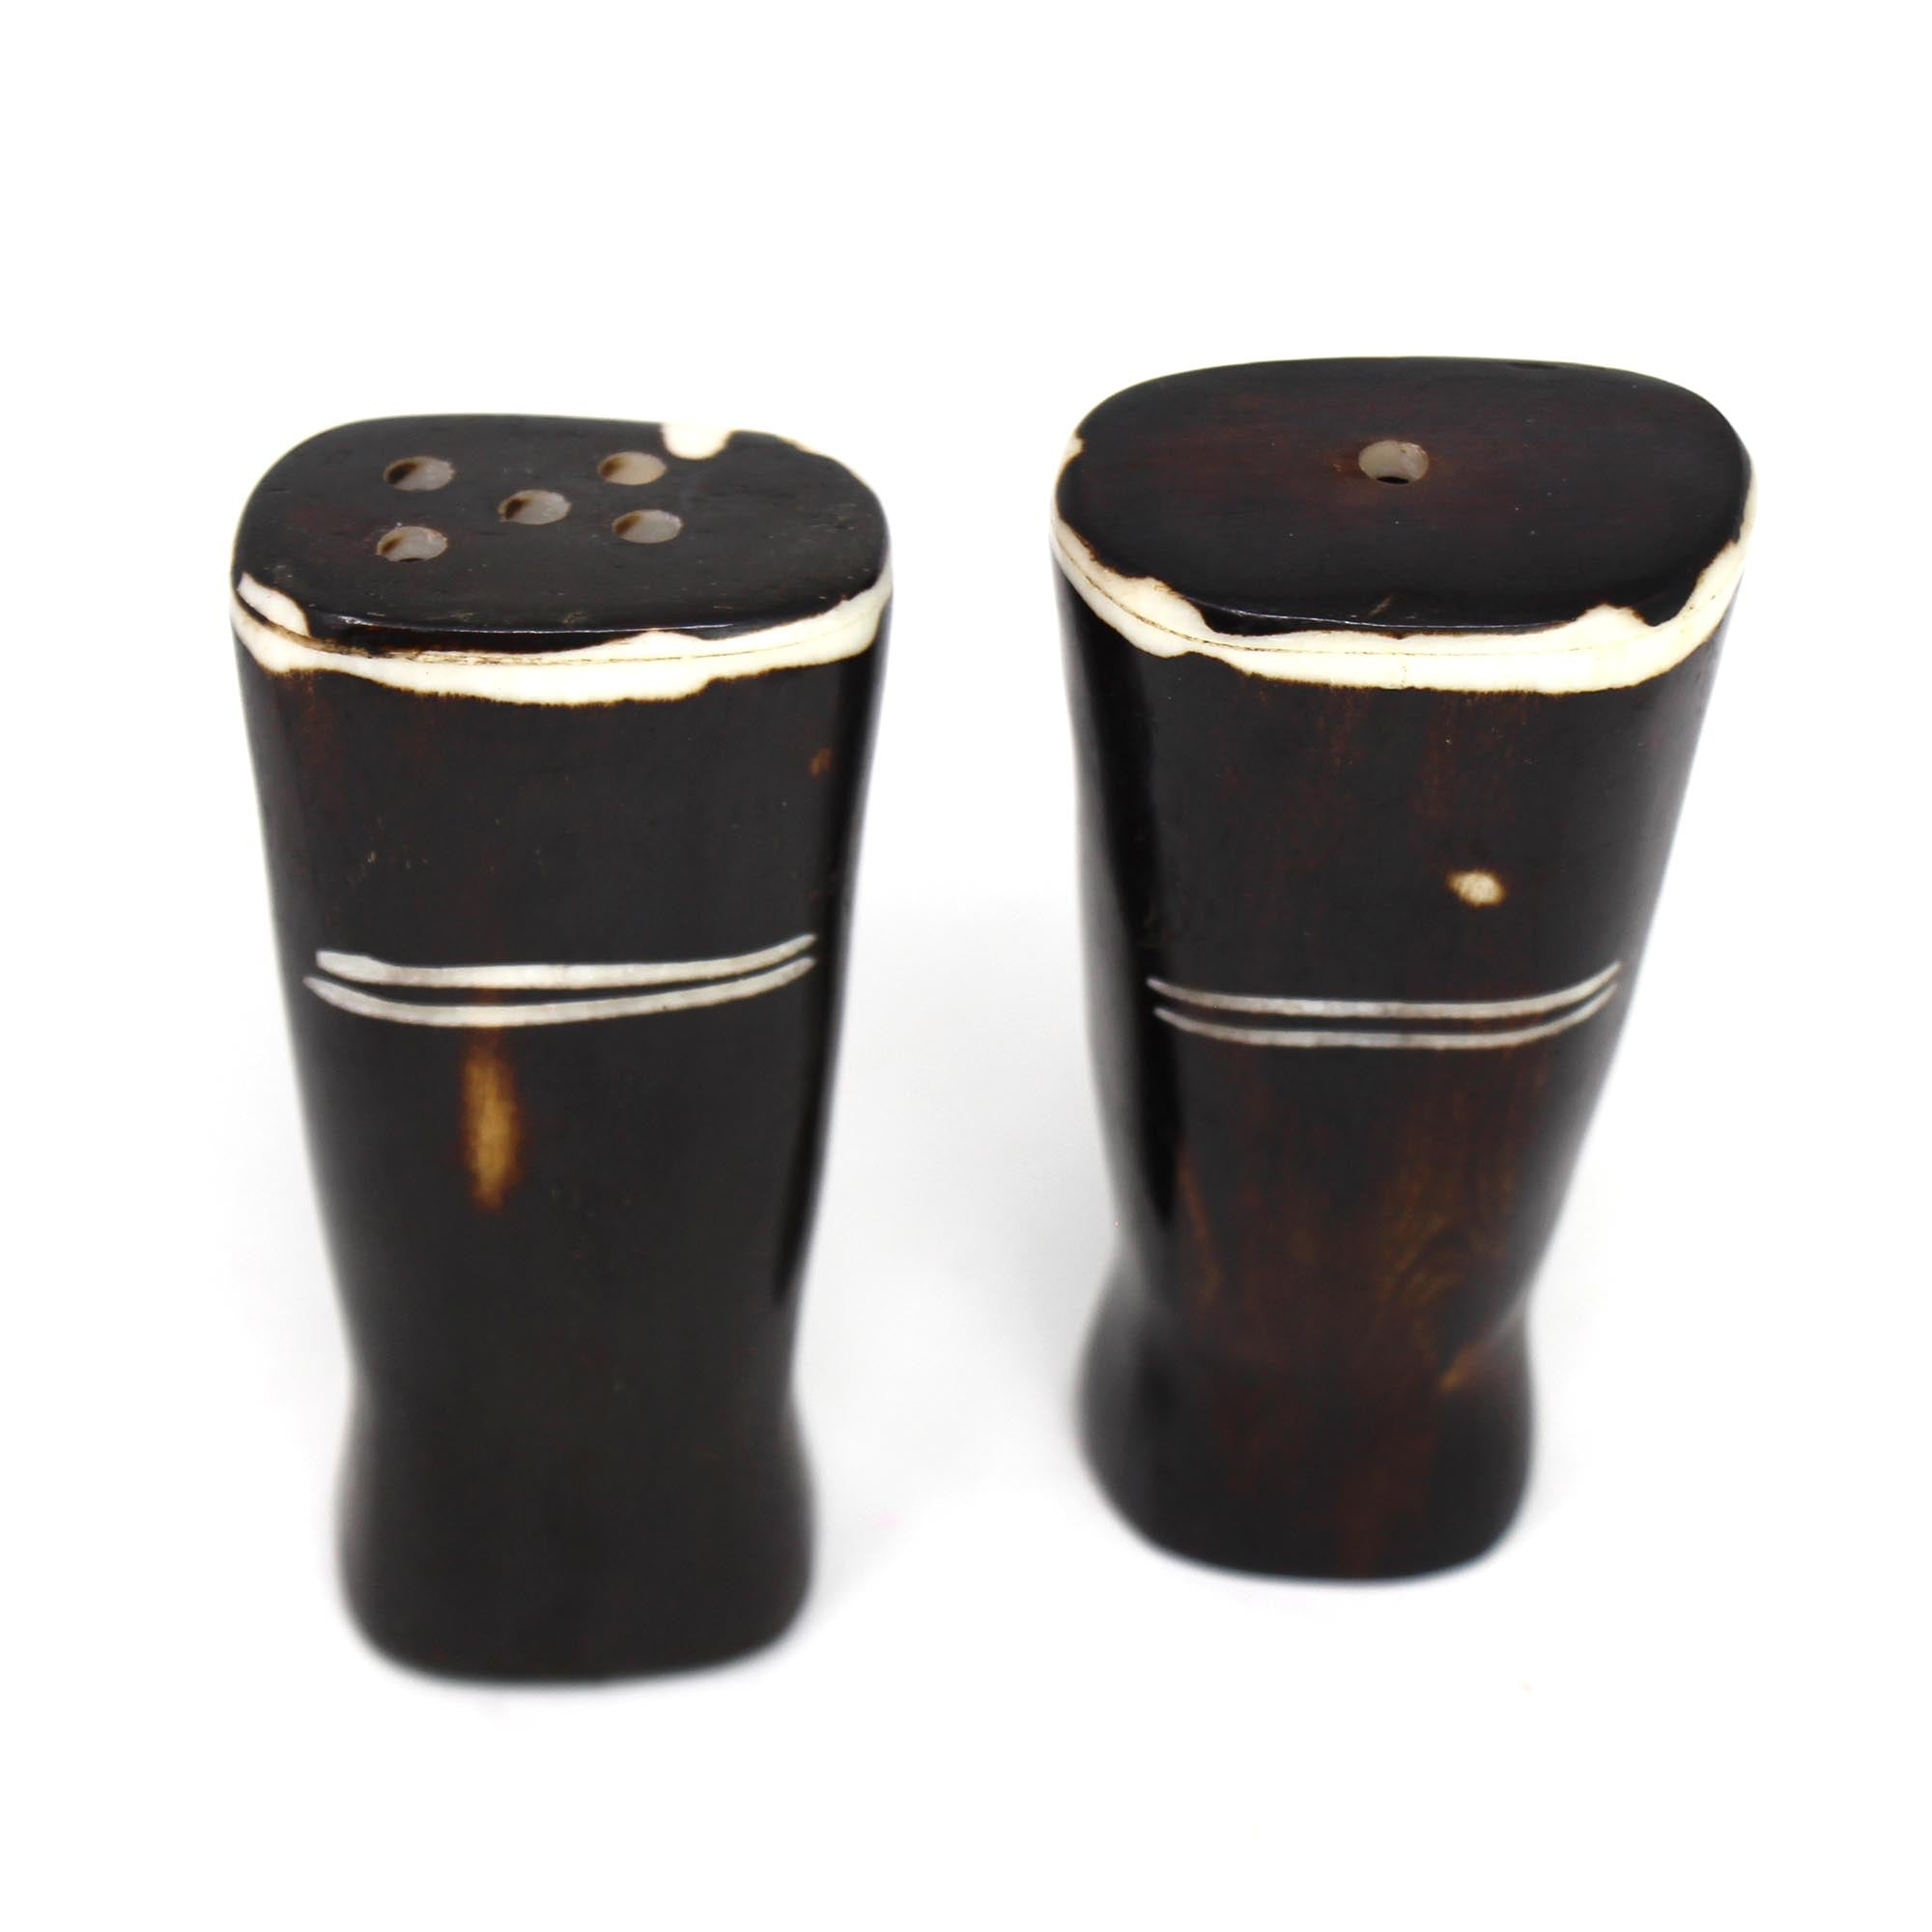 African Natural Bone Salt & Pepper Shakers, White Etch Design on Dark